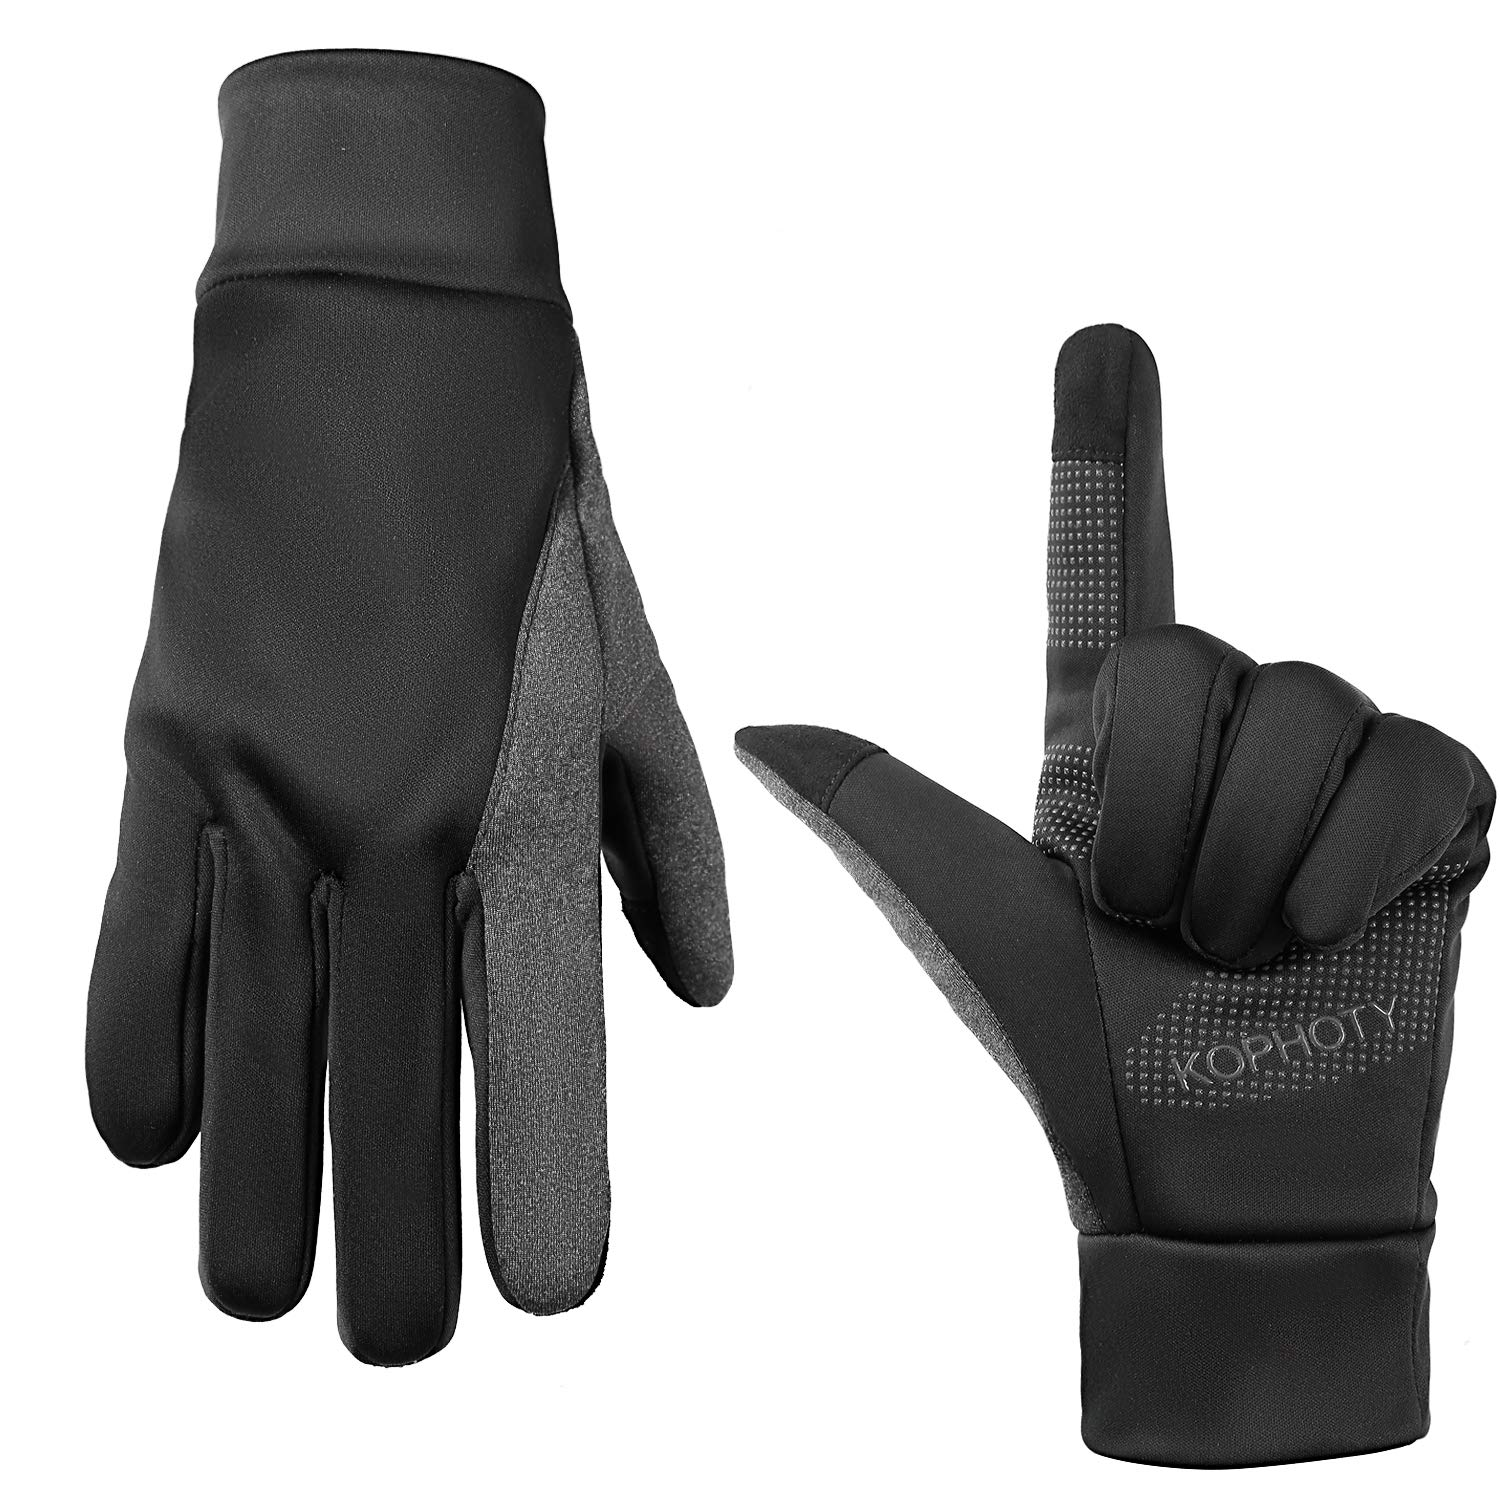 Mens Winter Fall Warm Gloves Outdoor Riding Motorcycle Windproof Mittens Gift Sb